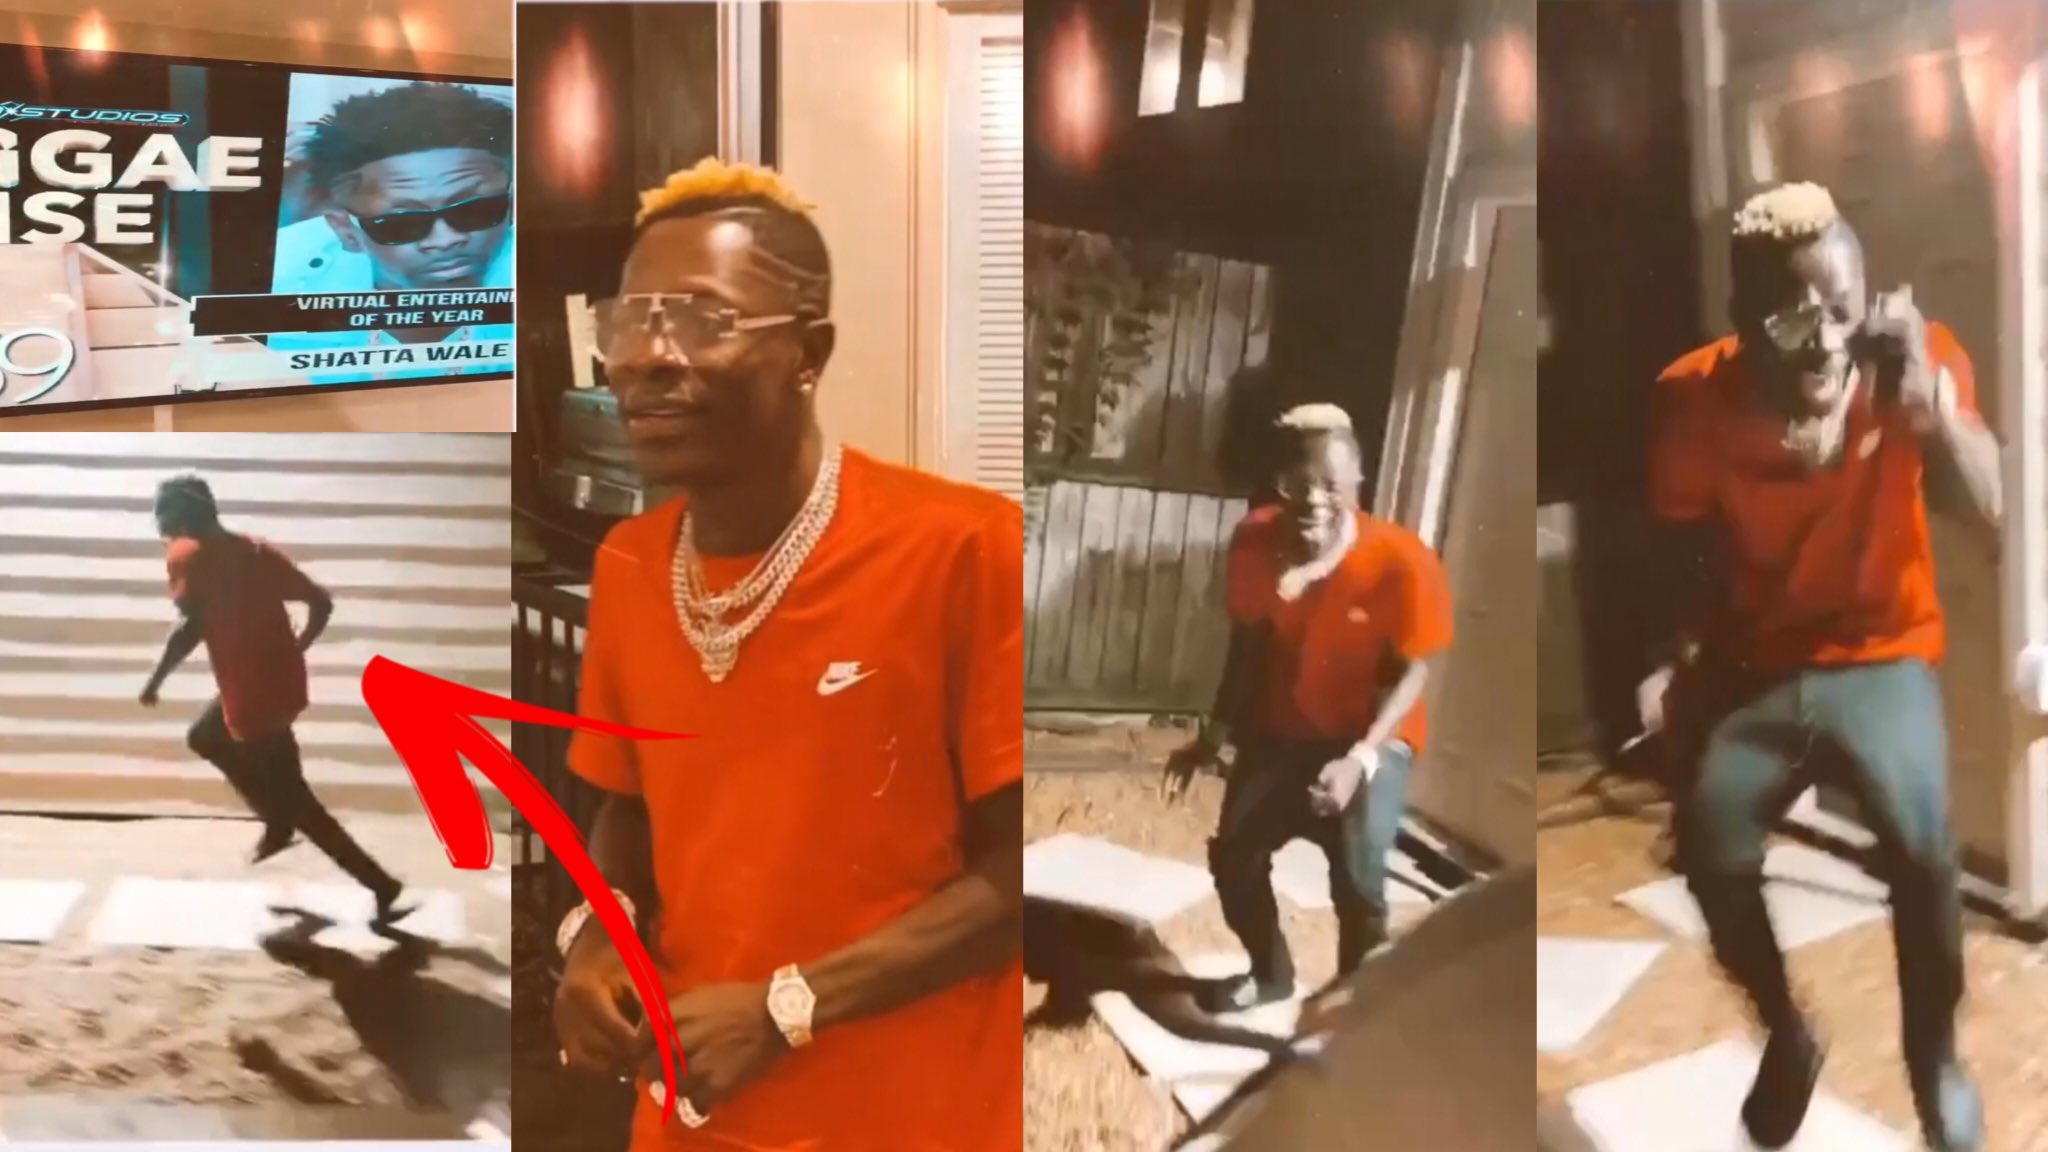 Shatta Wale's reaction when he was adjudged as the best virtual entertainer.